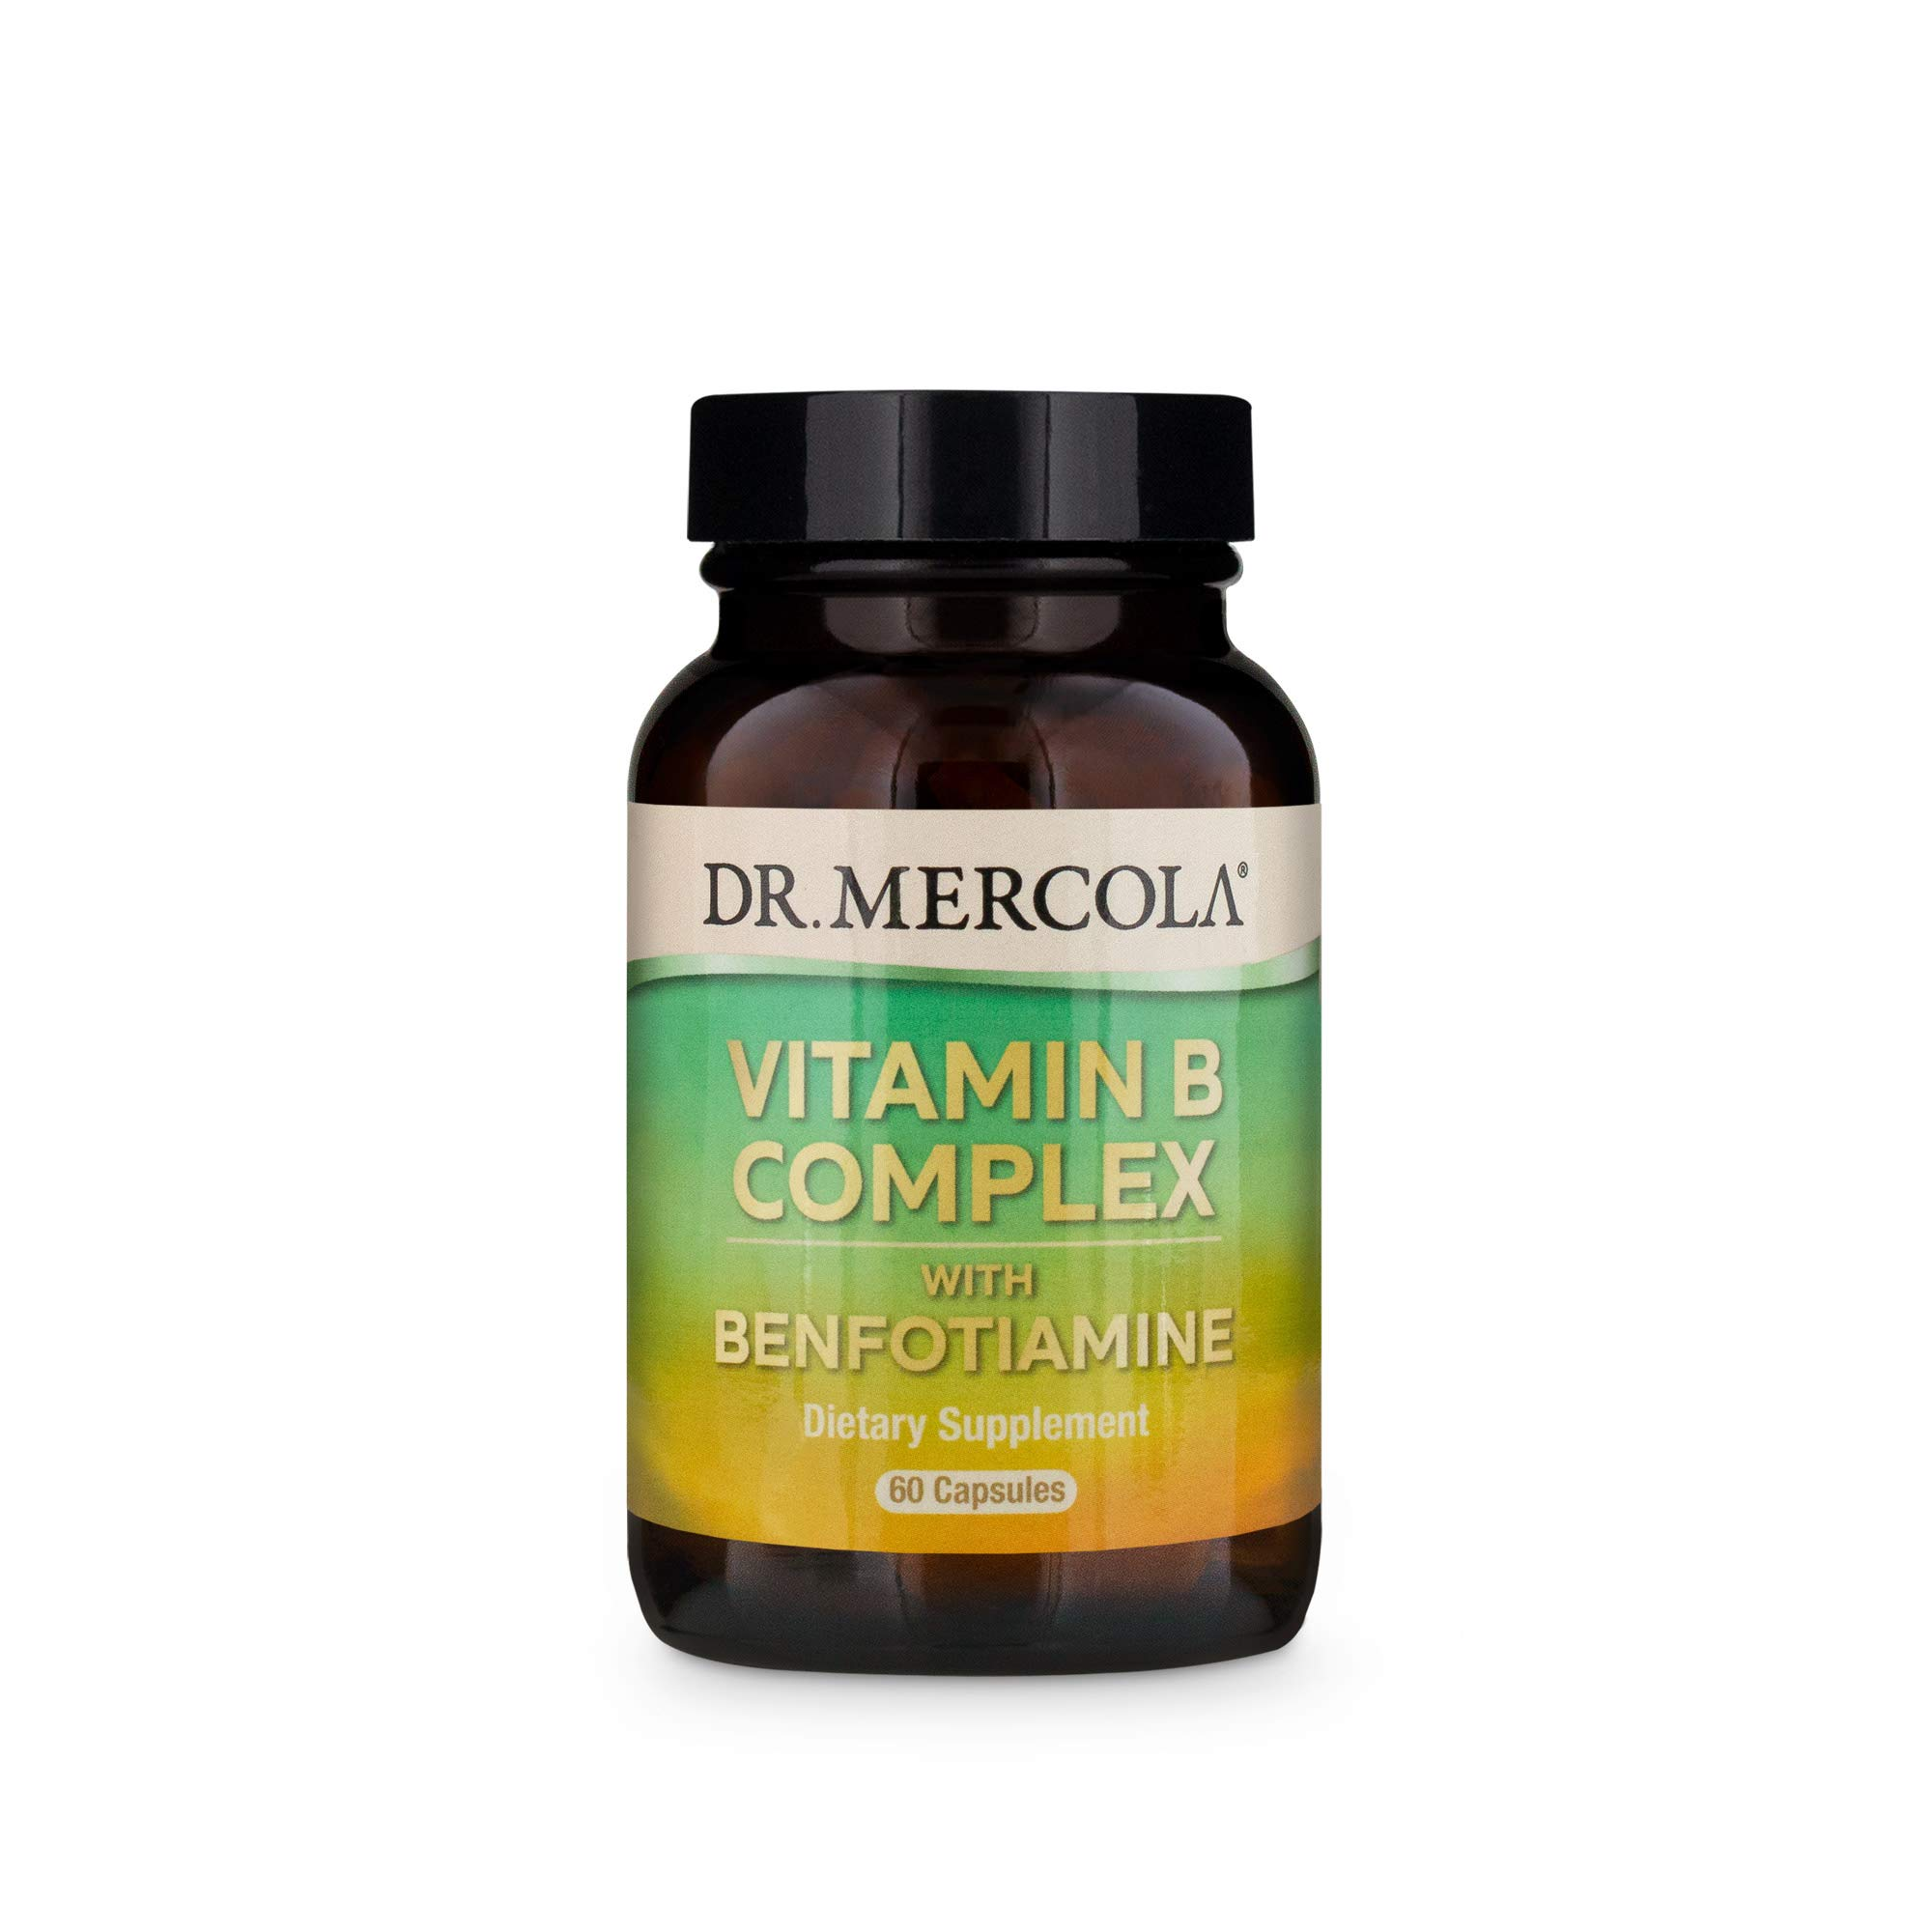 Dr. Mercola, Vitamin B Complex with Benfotiamine, 30 Servings (60) Capsules, Non GMO, Soy-Free, Gluten-Free by Dr. Mercola